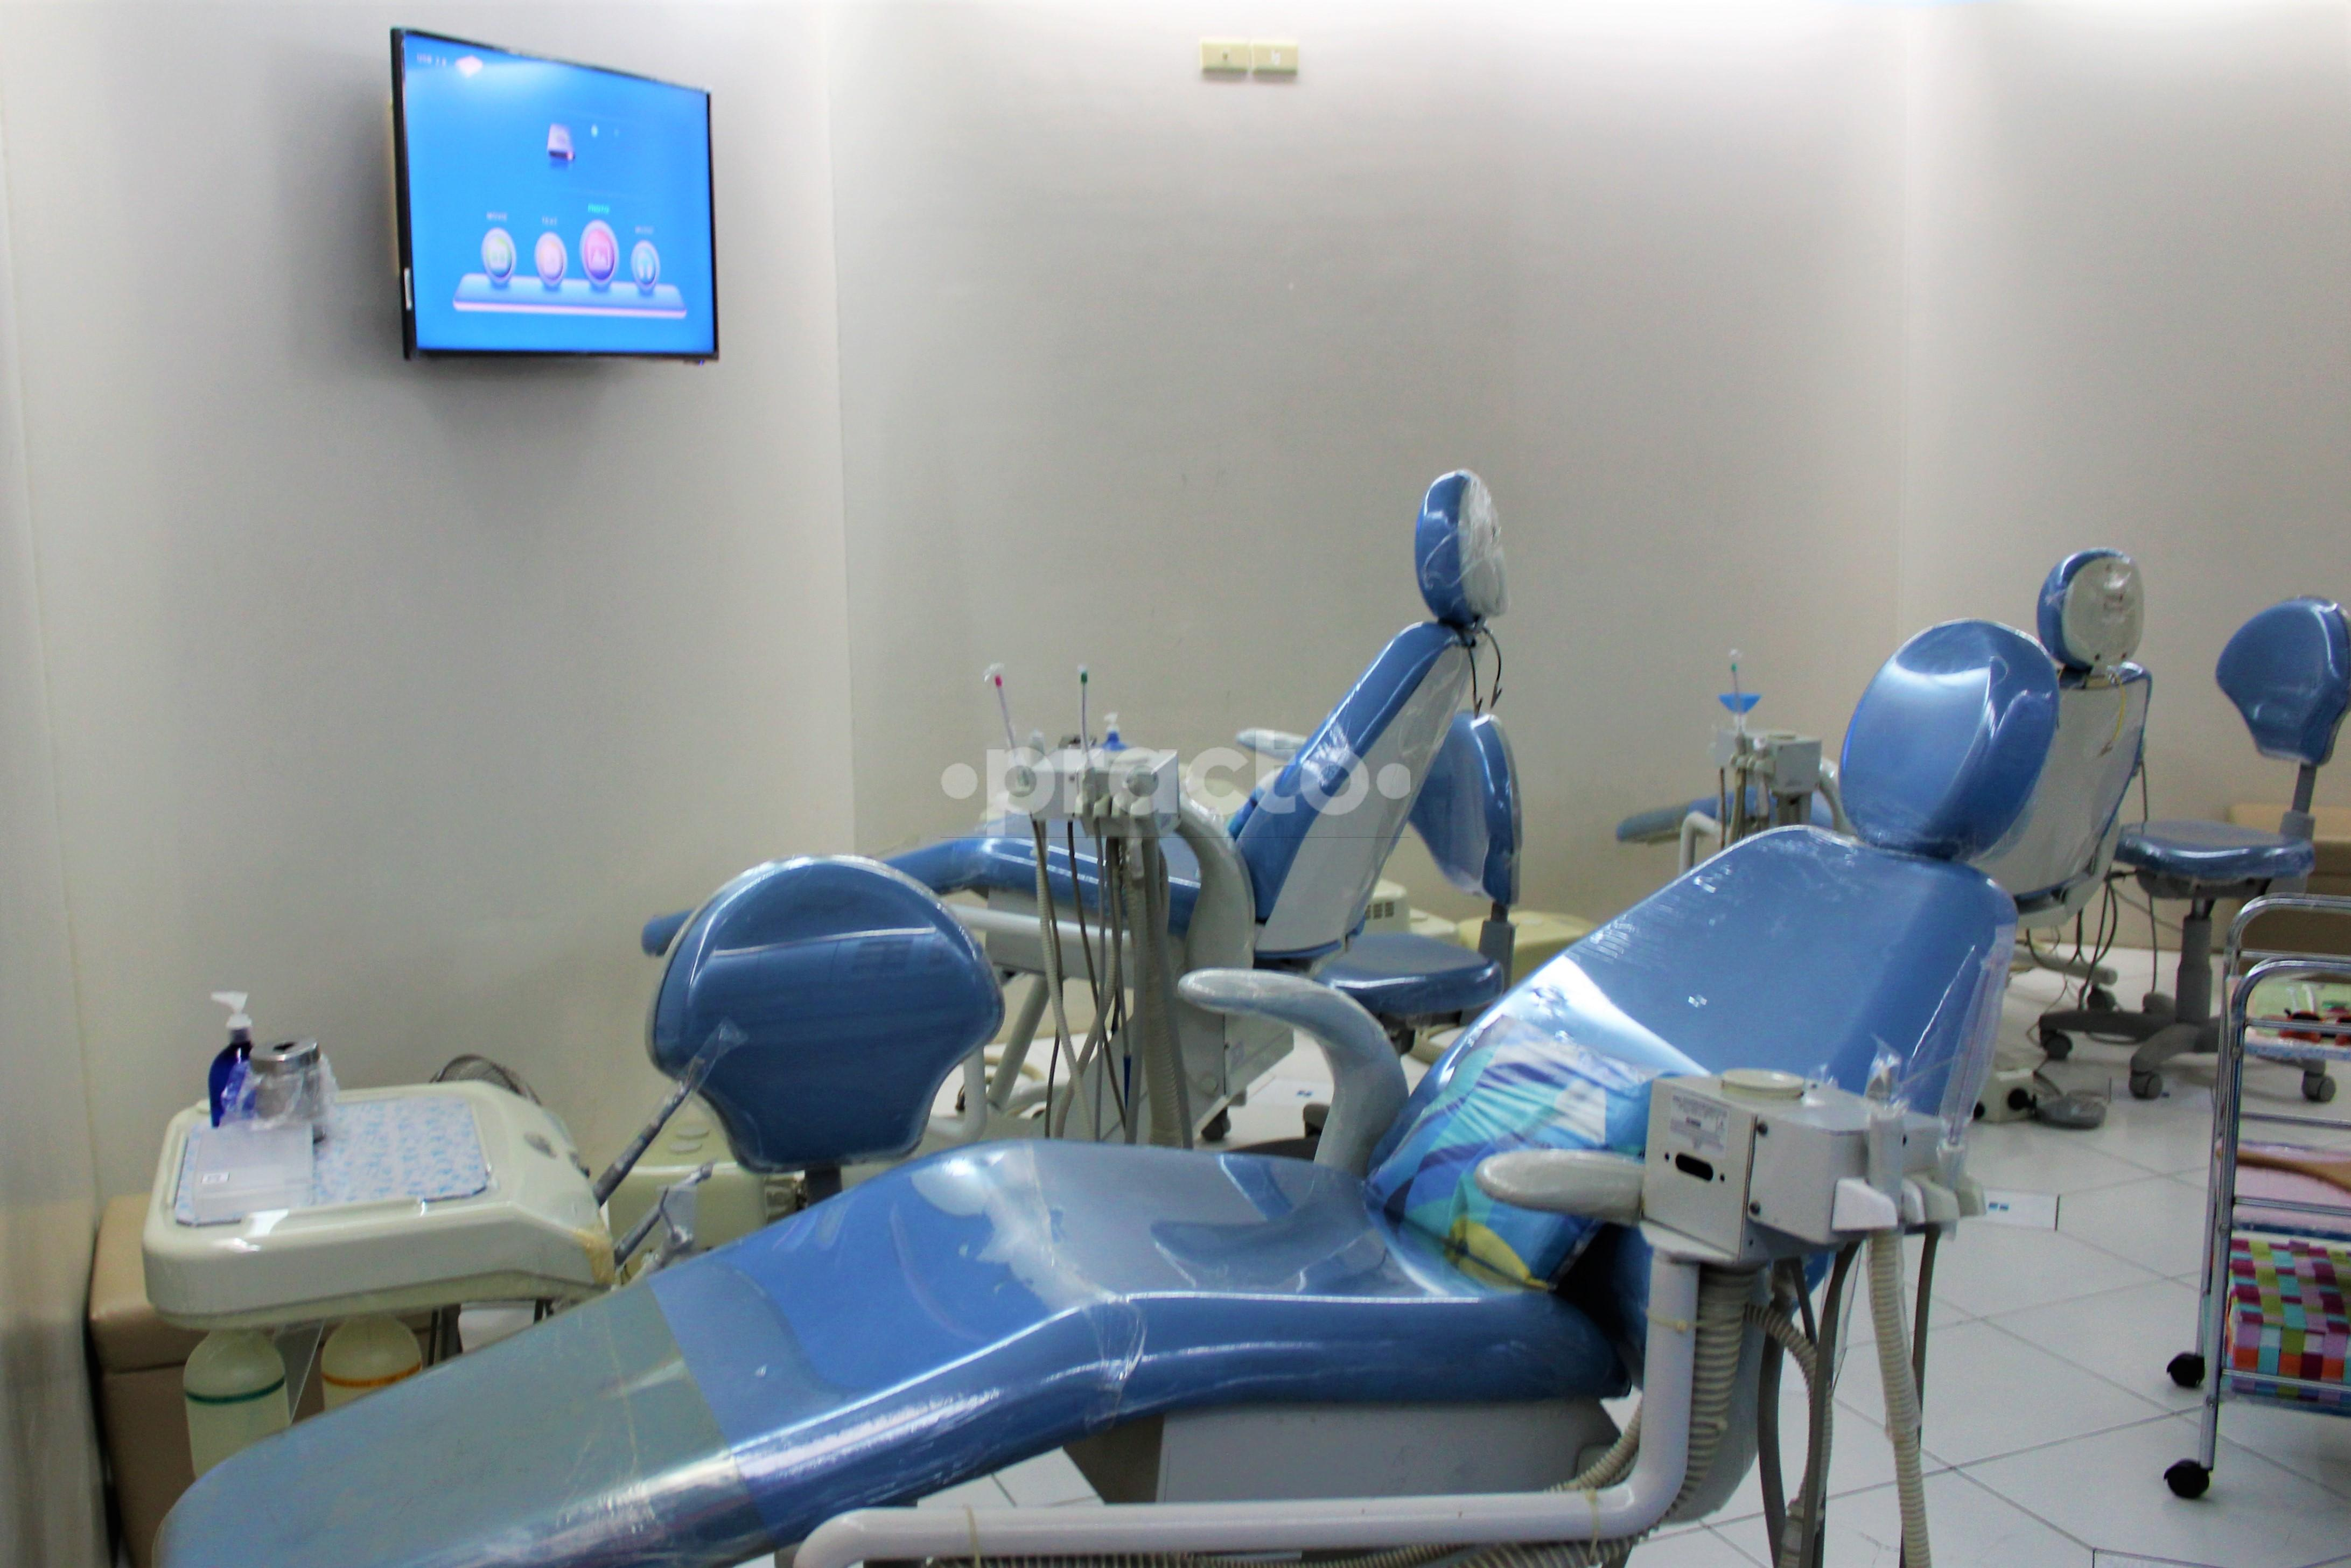 Best Pediatric Dental Clinics in Taguig - Book Appointment, View